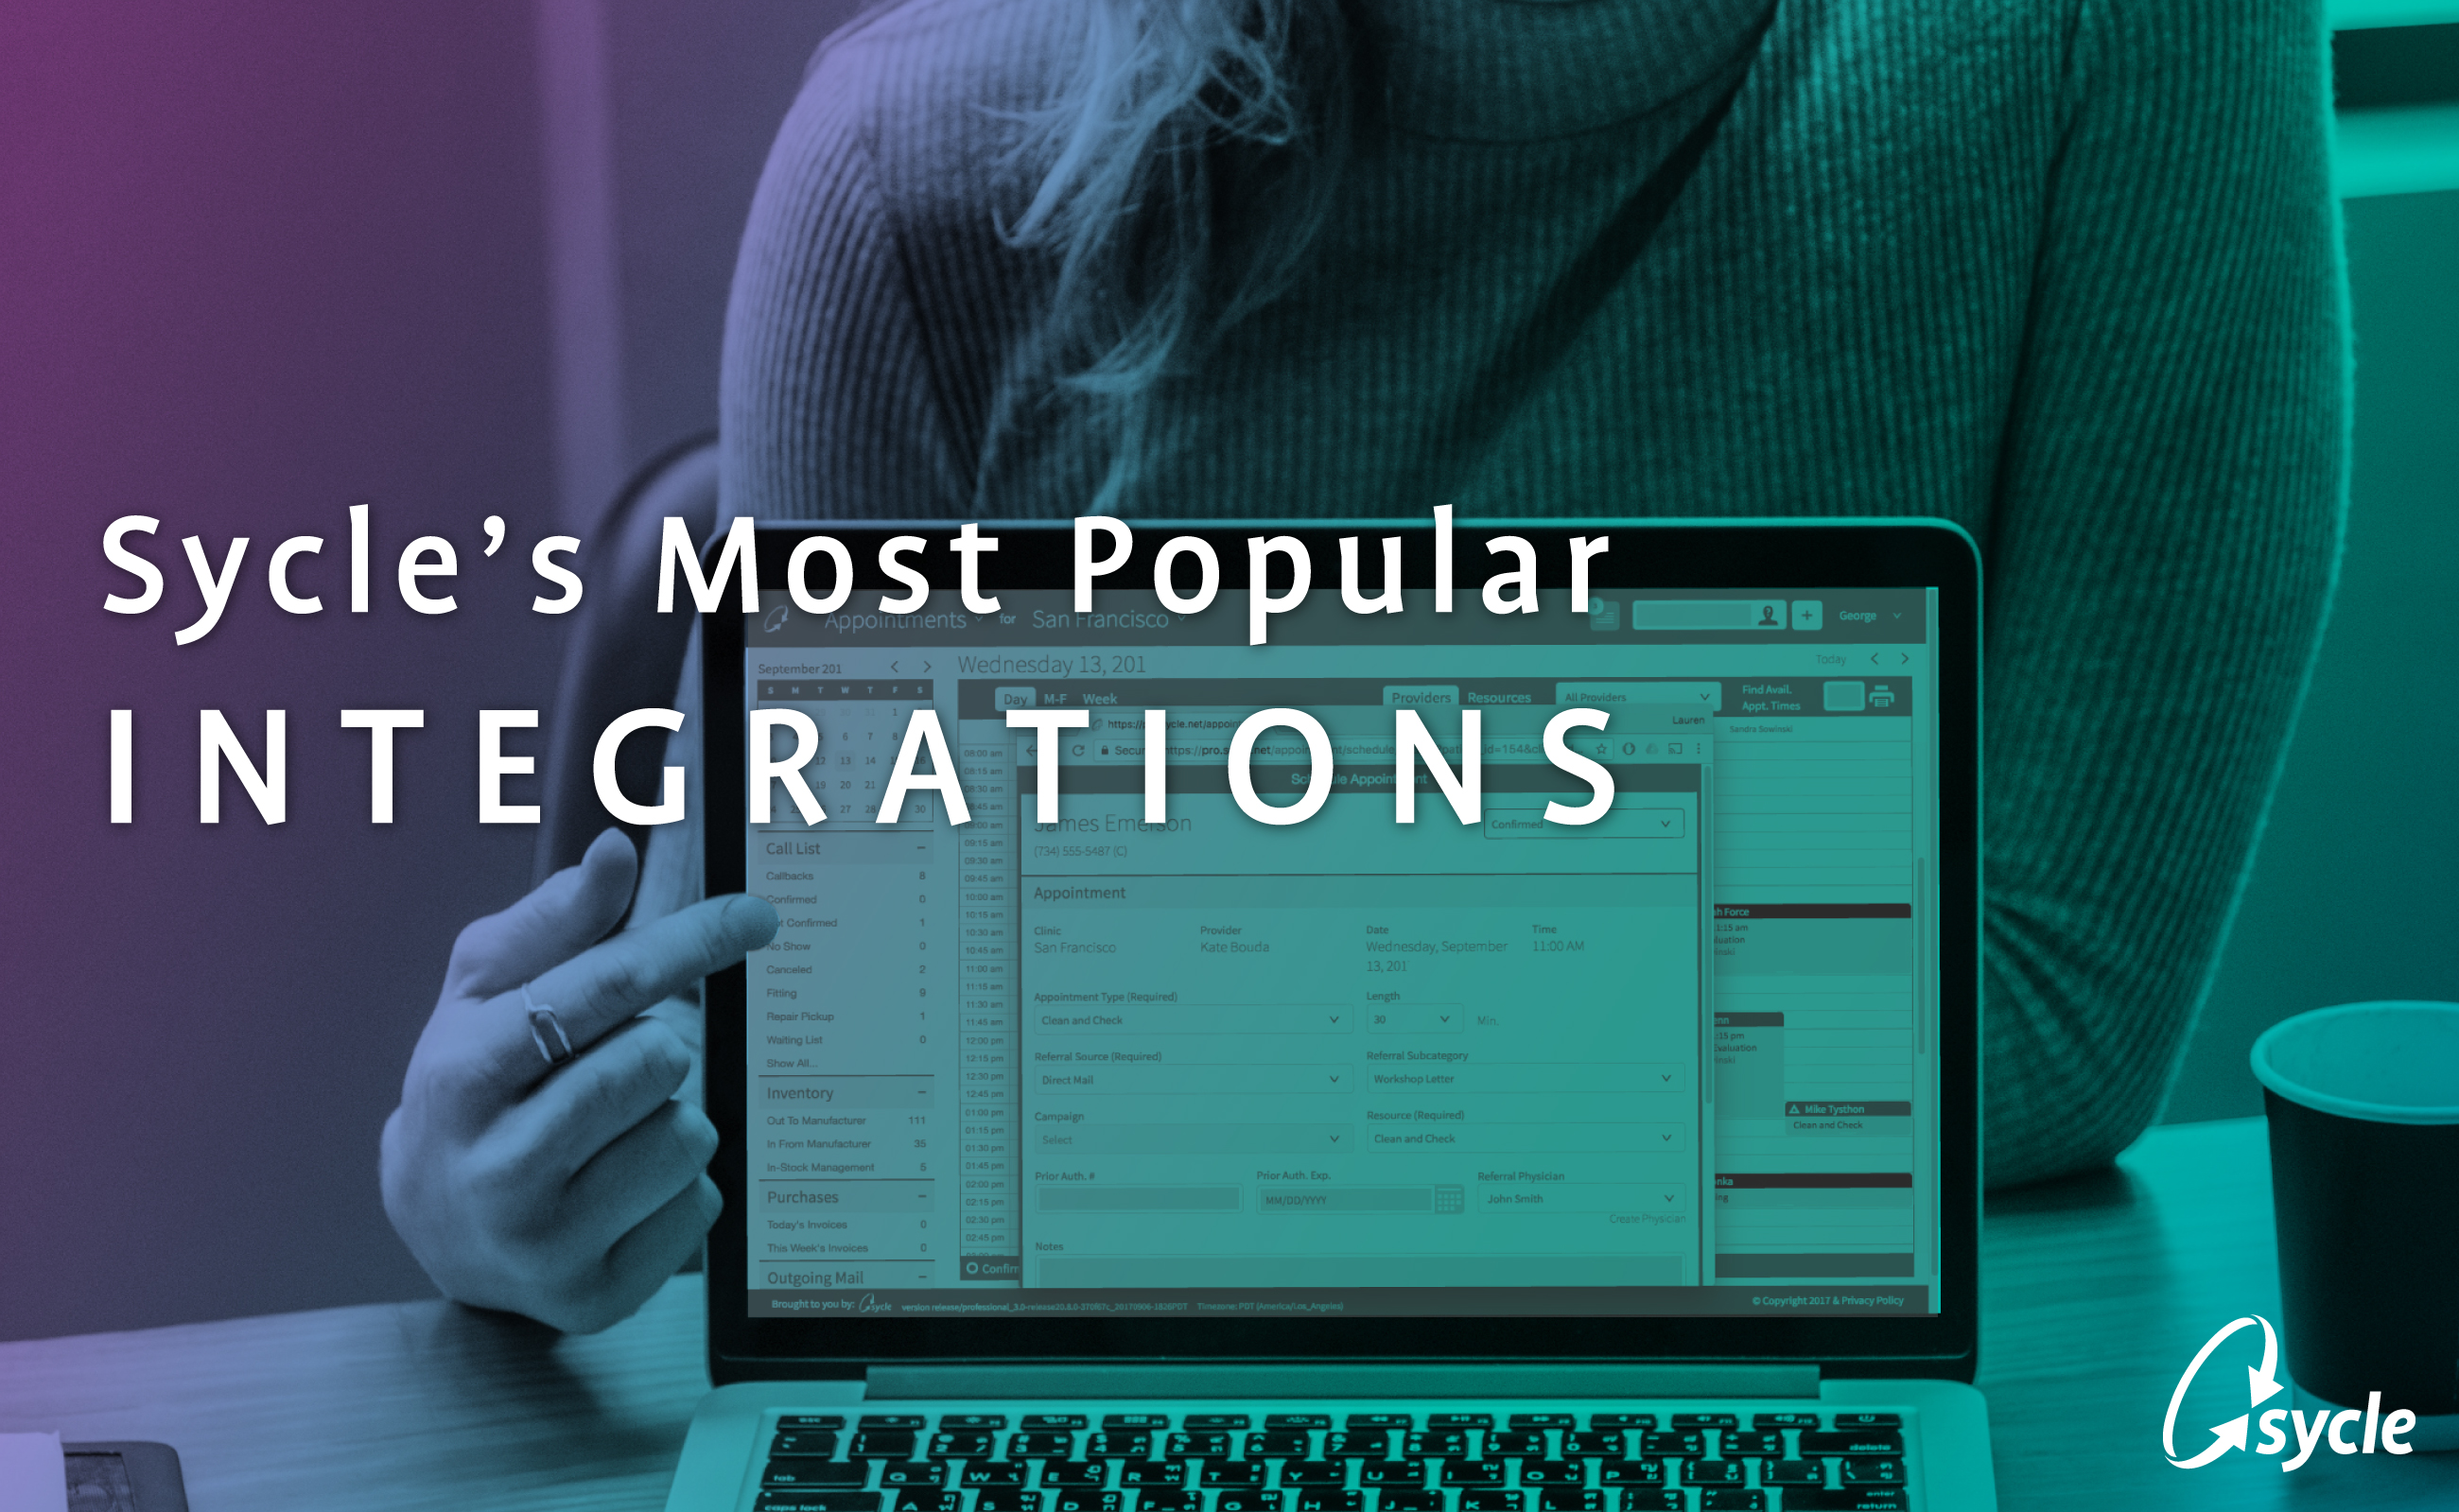 Infographic: Sycle's Most Popular Integrations image